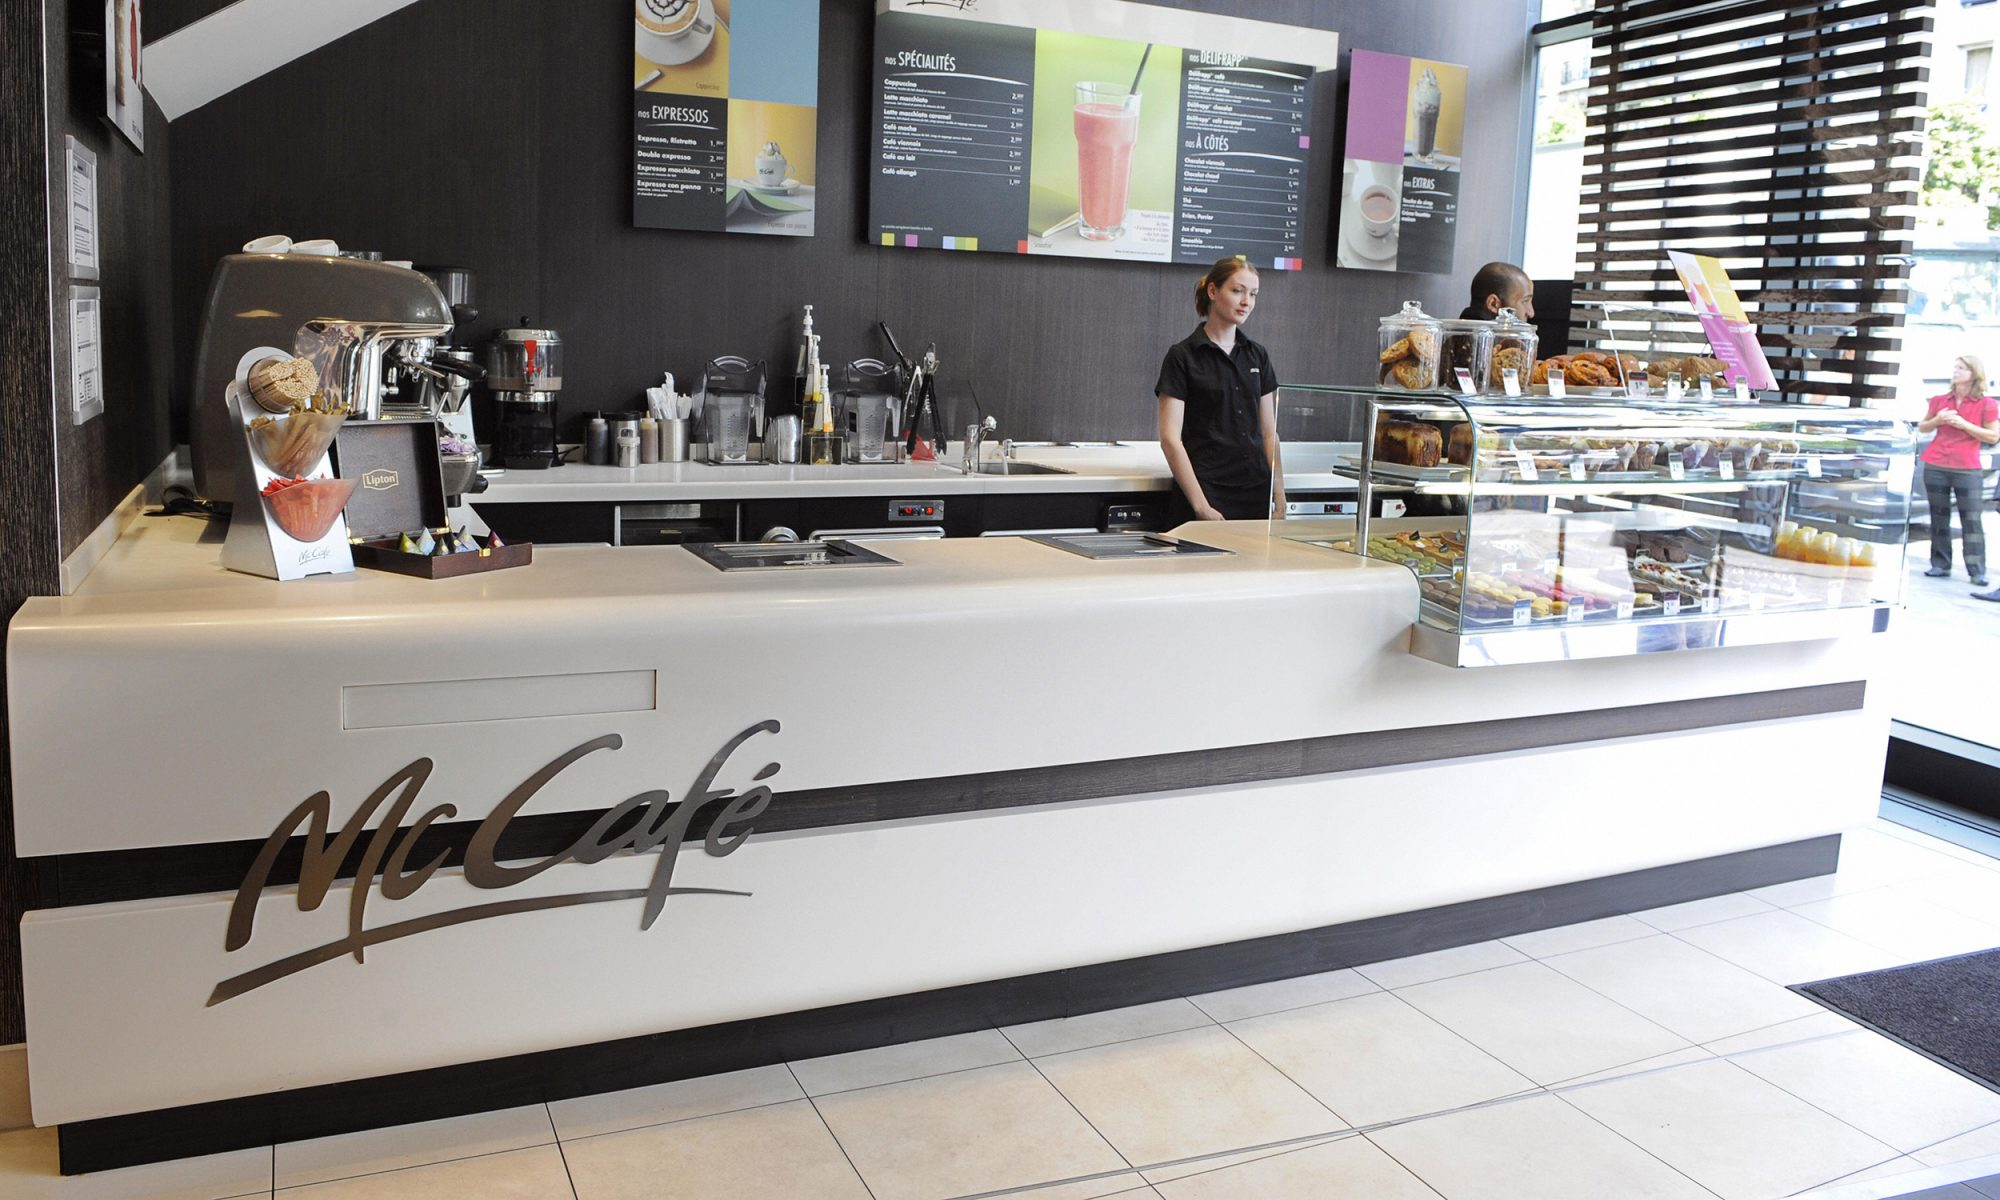 EC: France's Newest McDonald's Restaurant Only Sells Coffee and Pastries